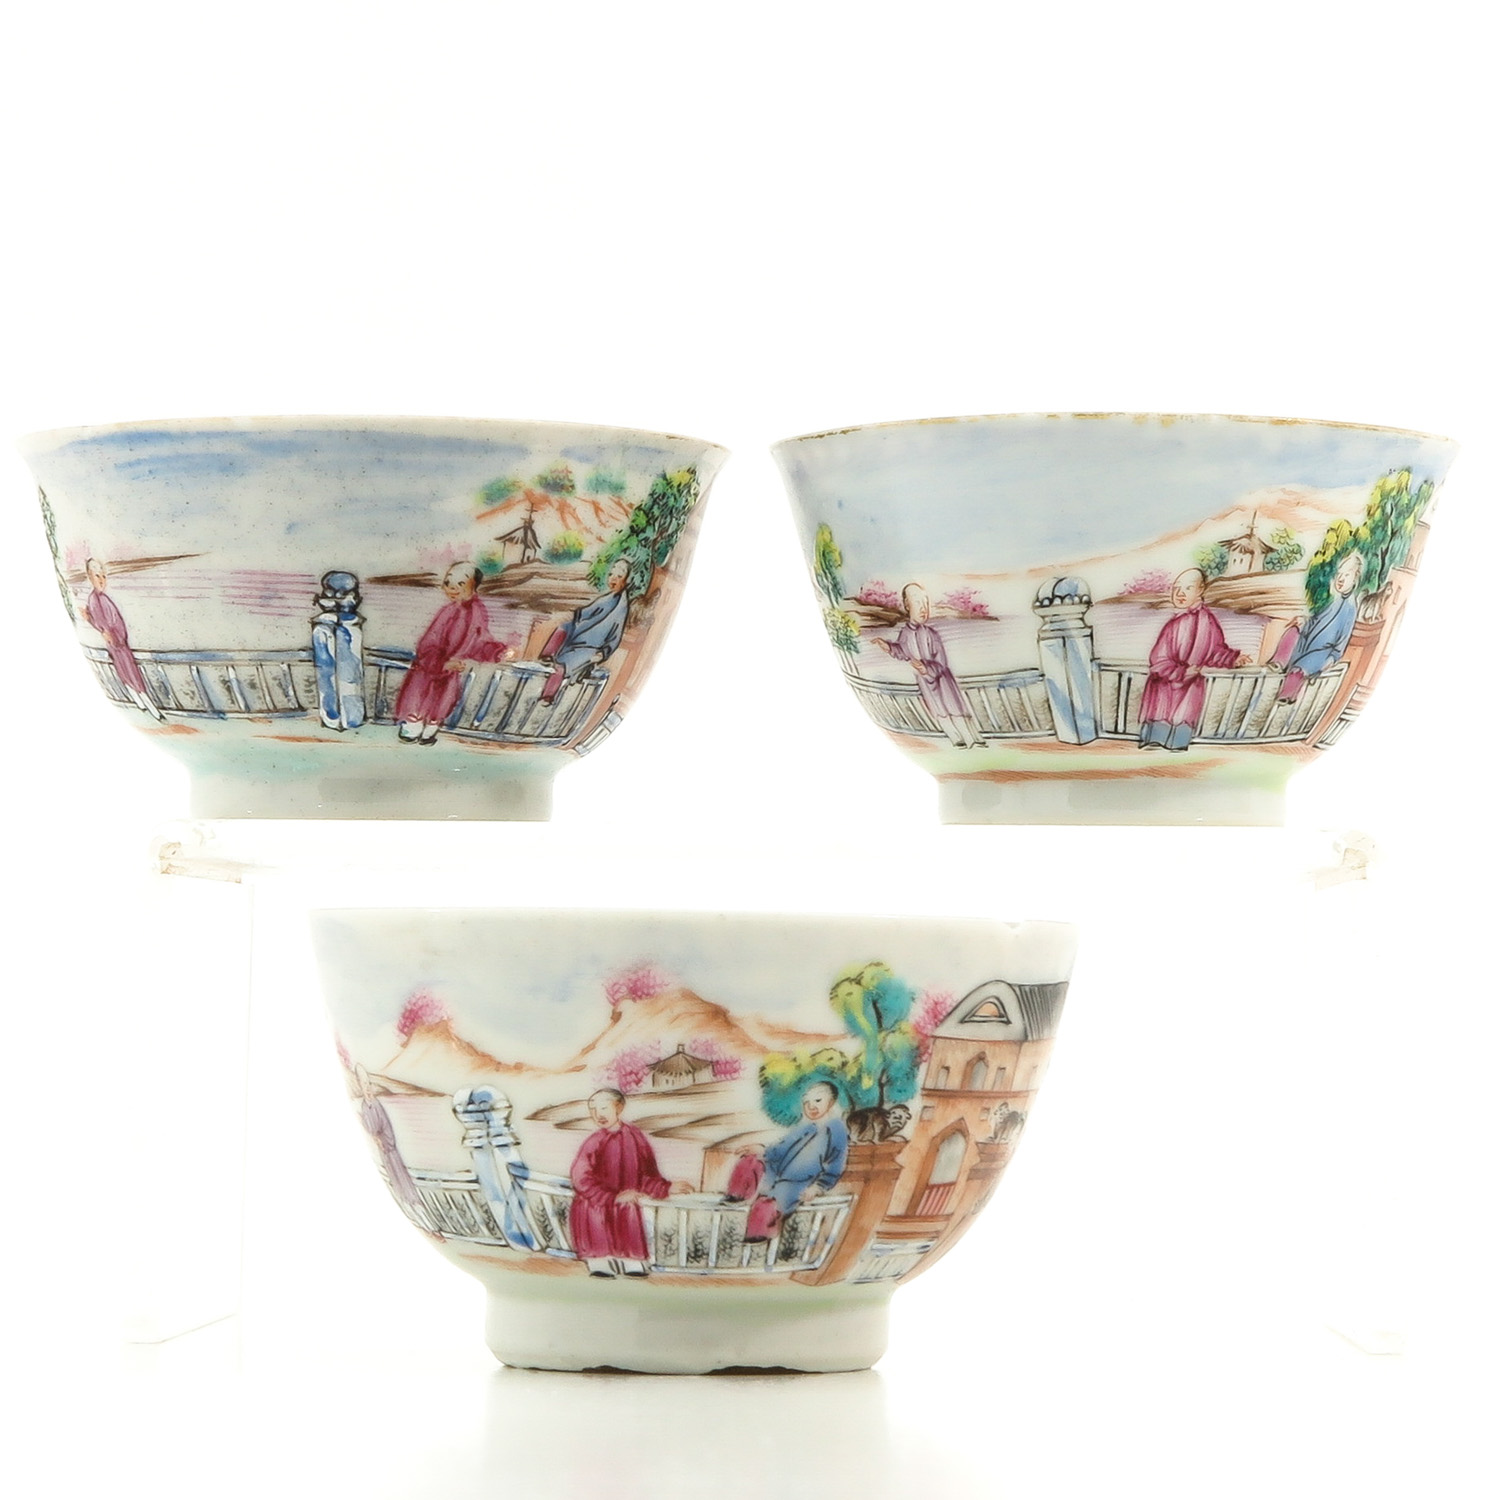 A Series of 3 Cups and Saucers - Image 4 of 10